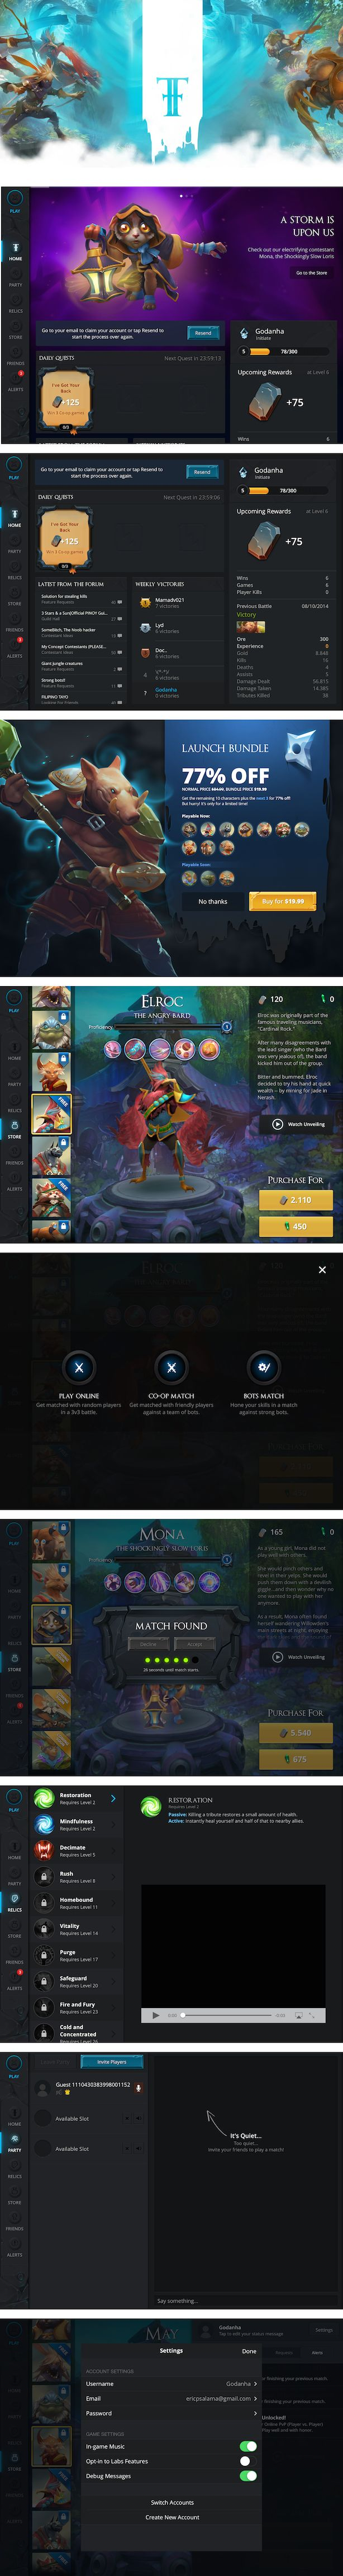 Fates Forever iPad MOBA UI  Reminds me of Dota2 painterly style